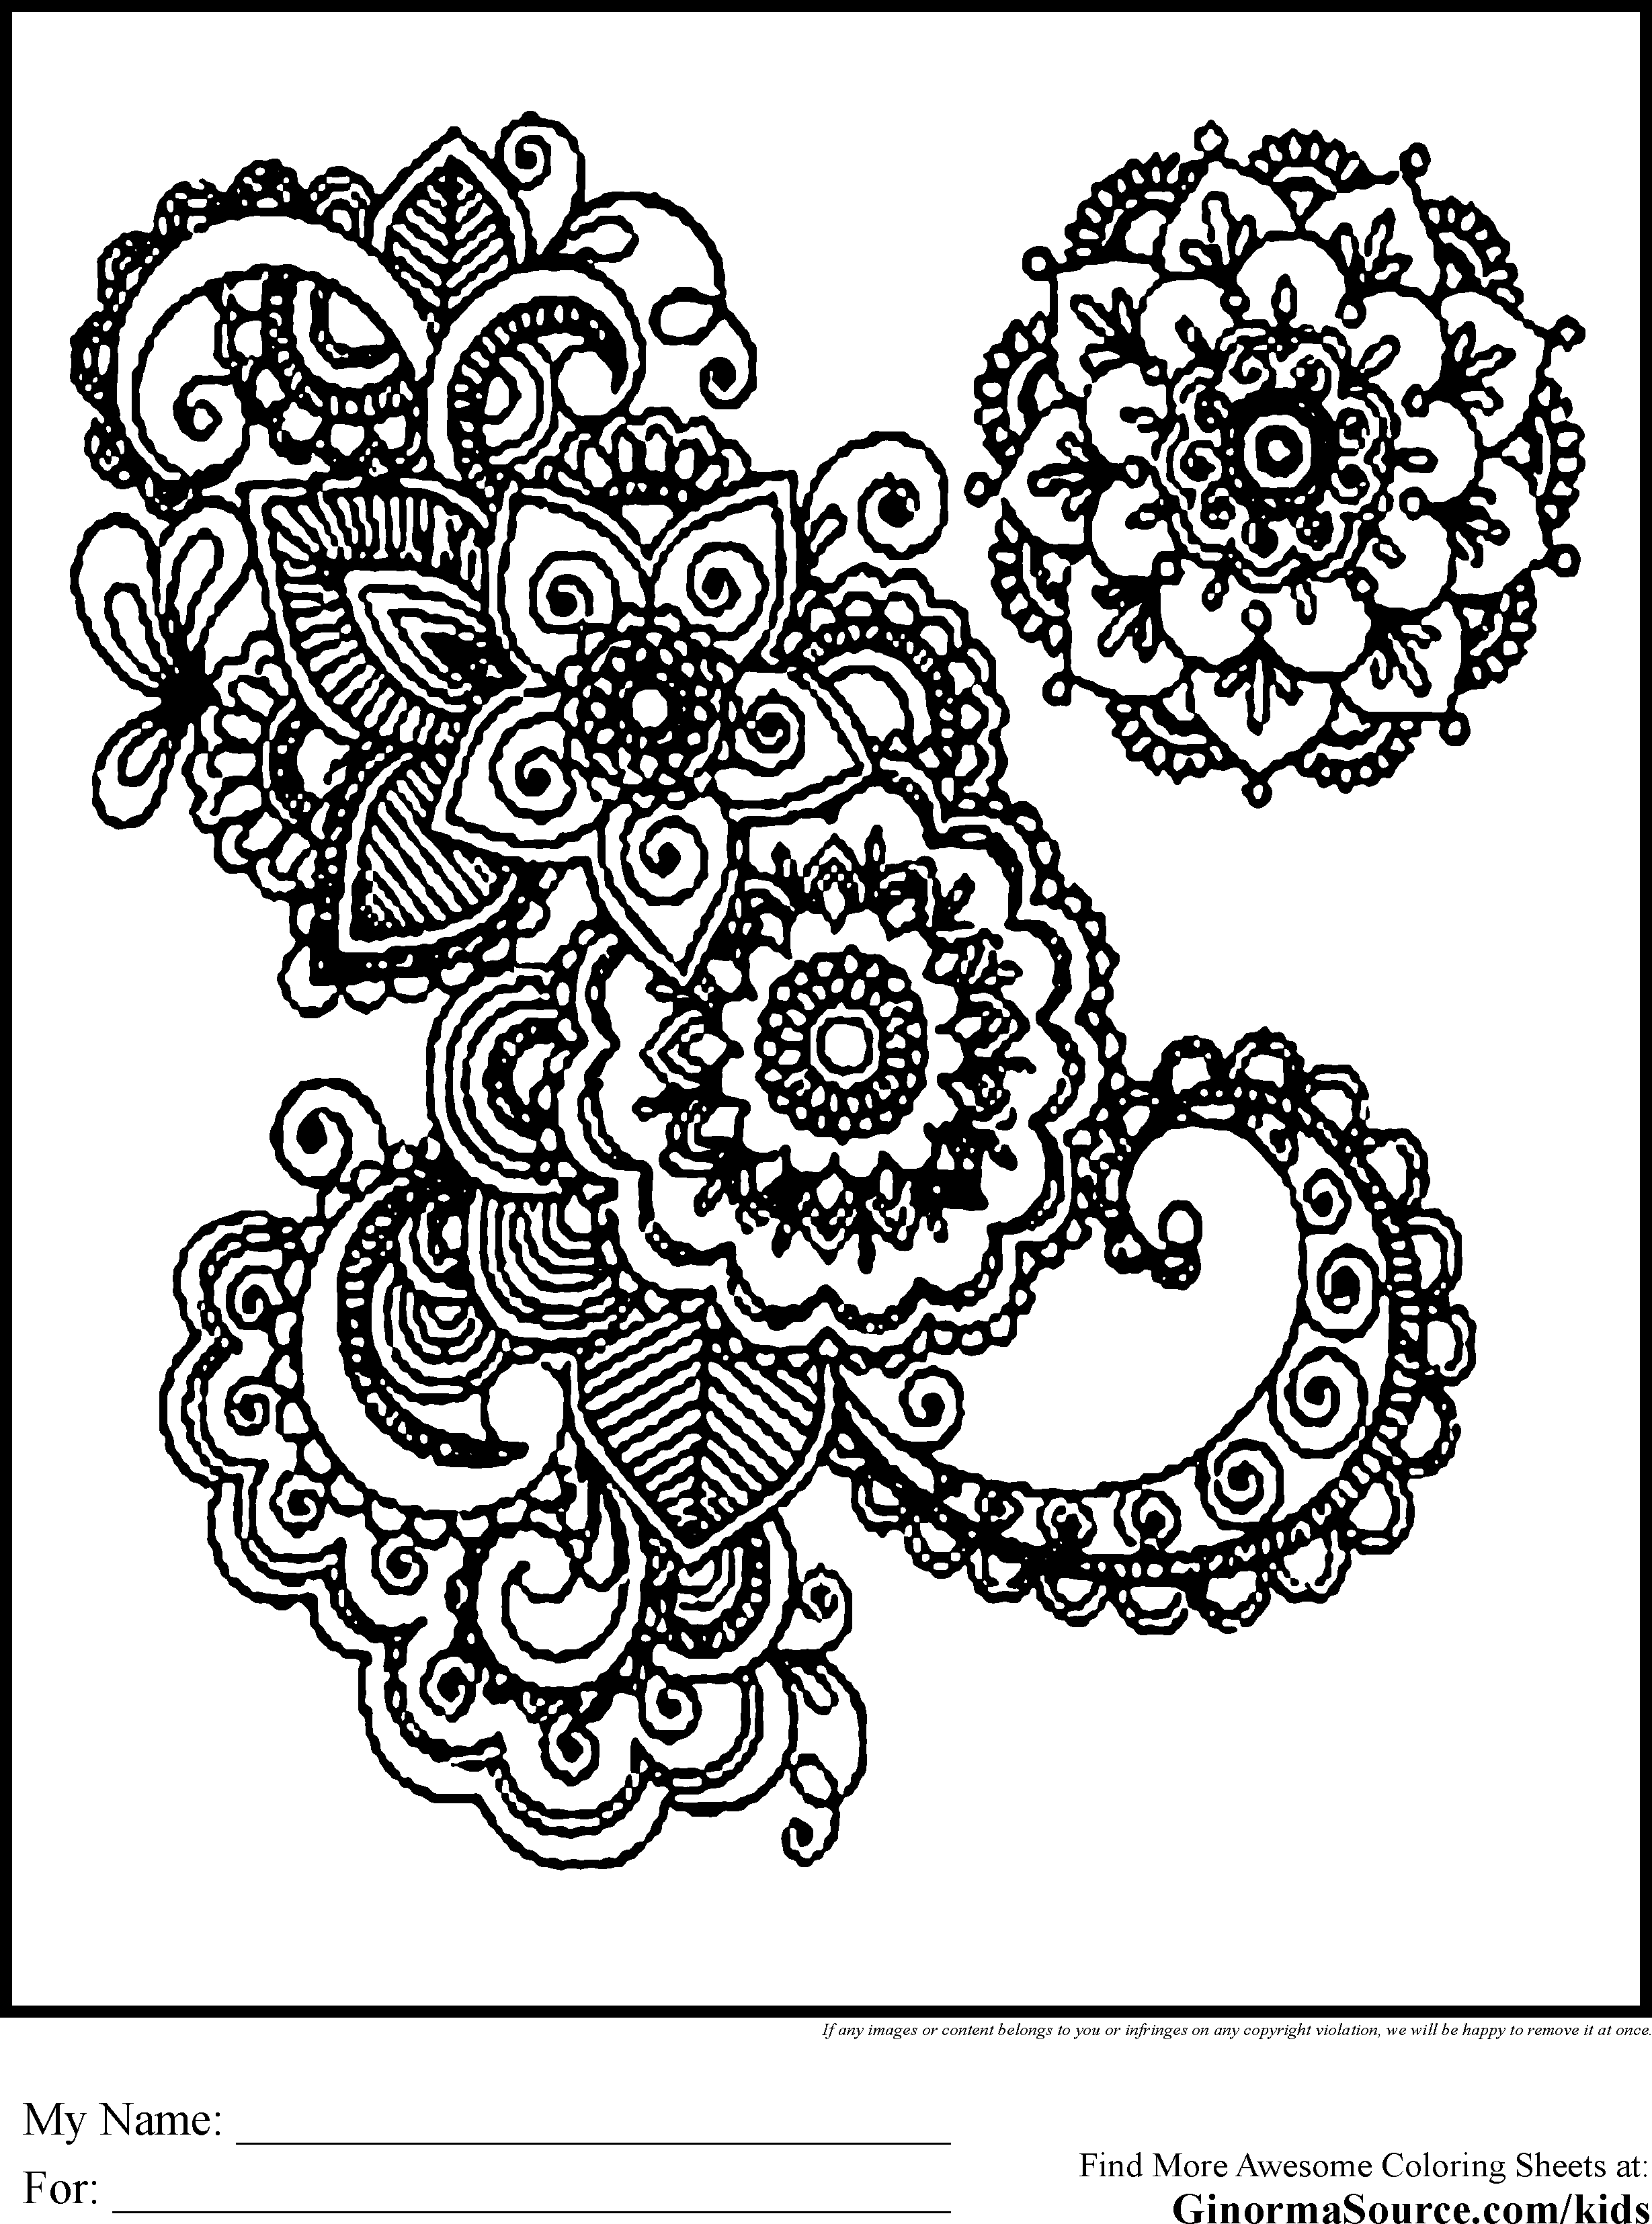 Advanced_Coloring_Pages_For_Kids_01